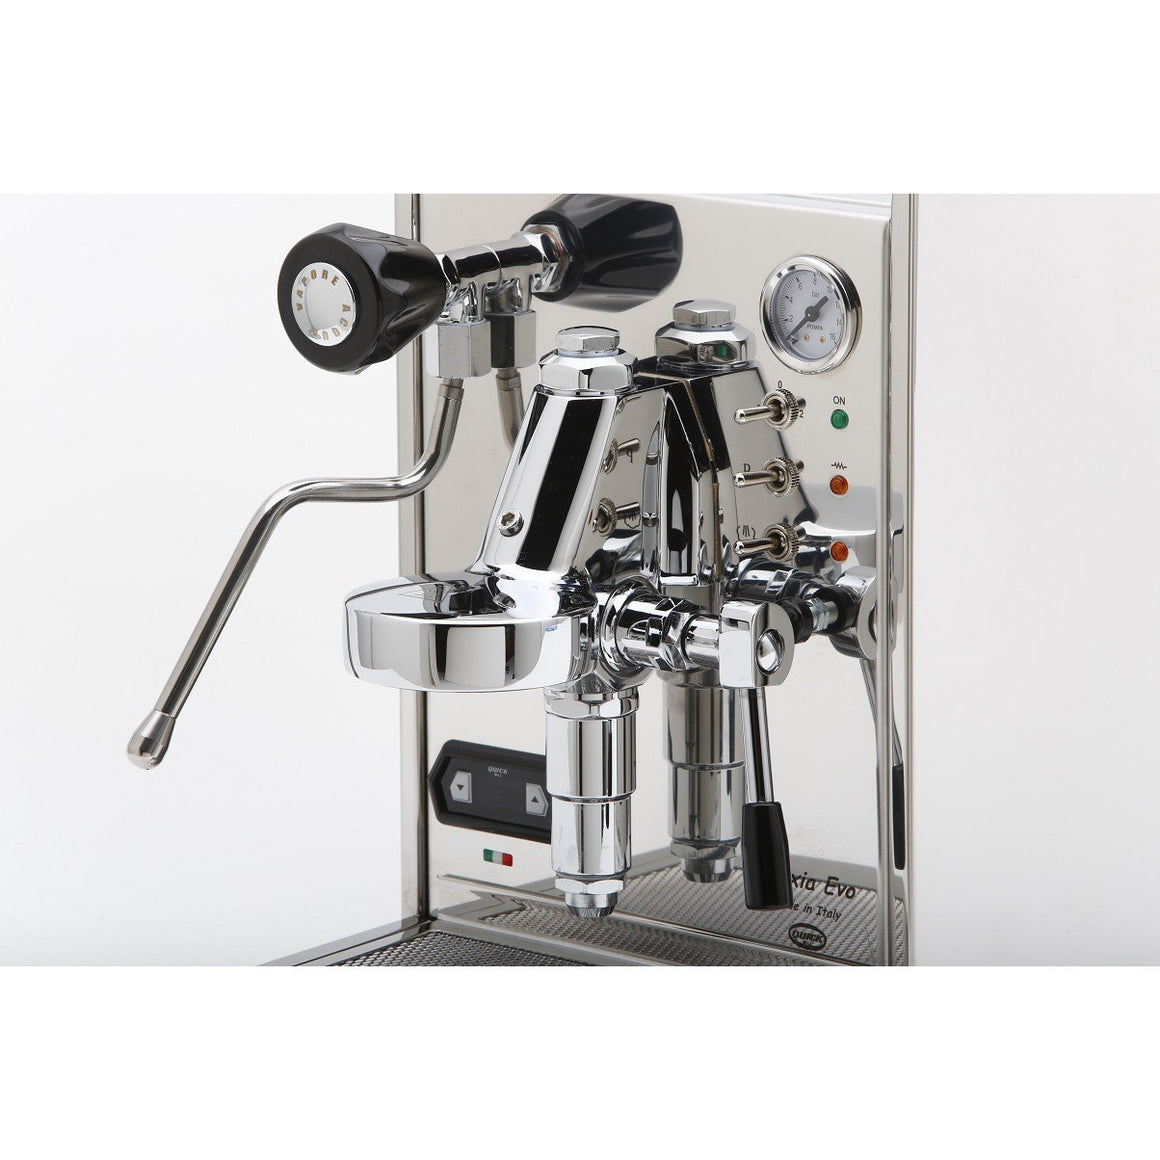 QUICK MILL ALEXIA EVO ESPRESSO MACHINE - My Espresso Shop - 2